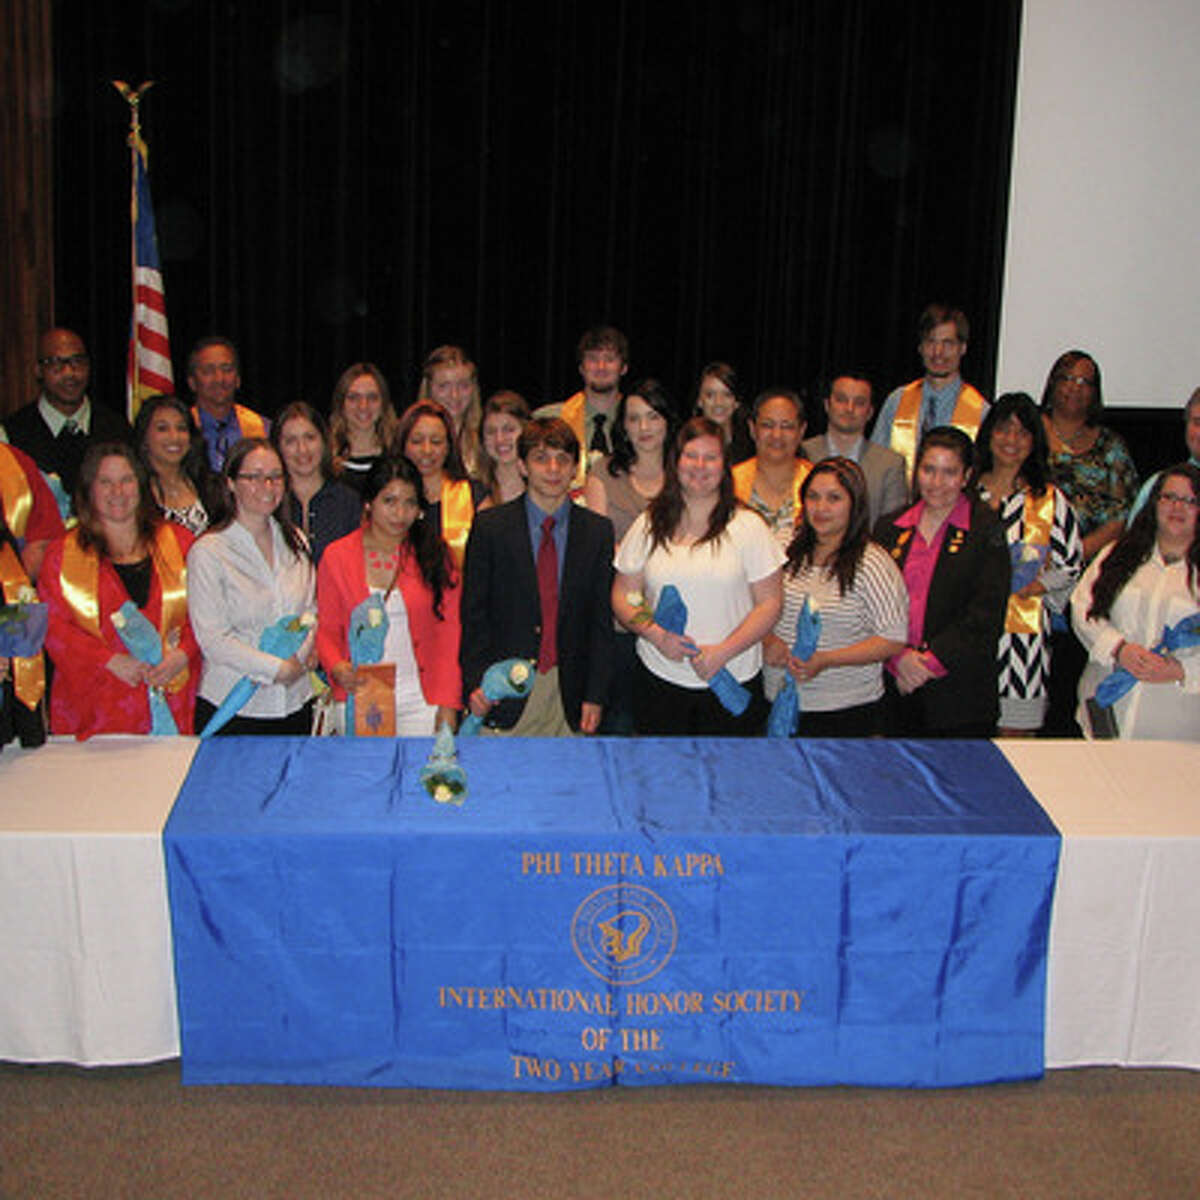 Twenty-eight students participated in the spring Phi Theta Kappa induction ceremony at College of the Mainland.